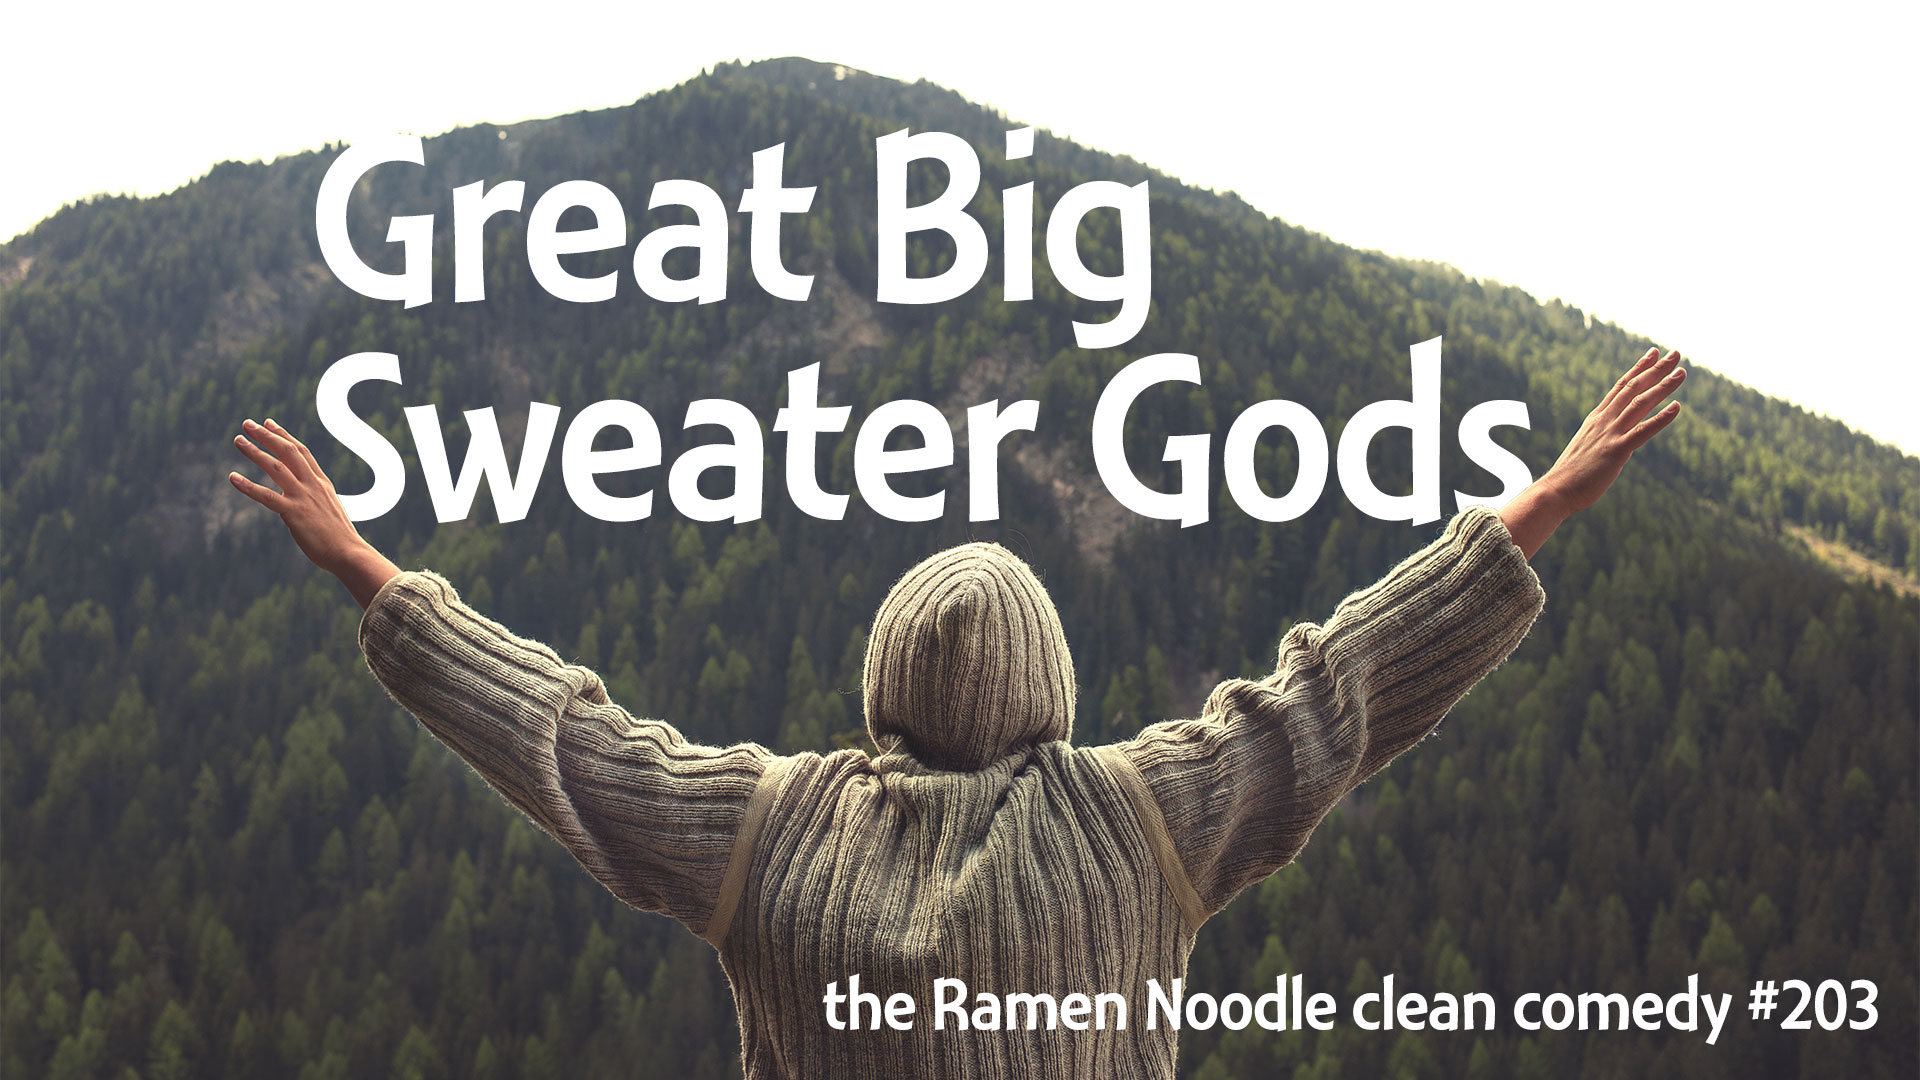 Great Big Sweater Gods - clean-comedy podcast #203